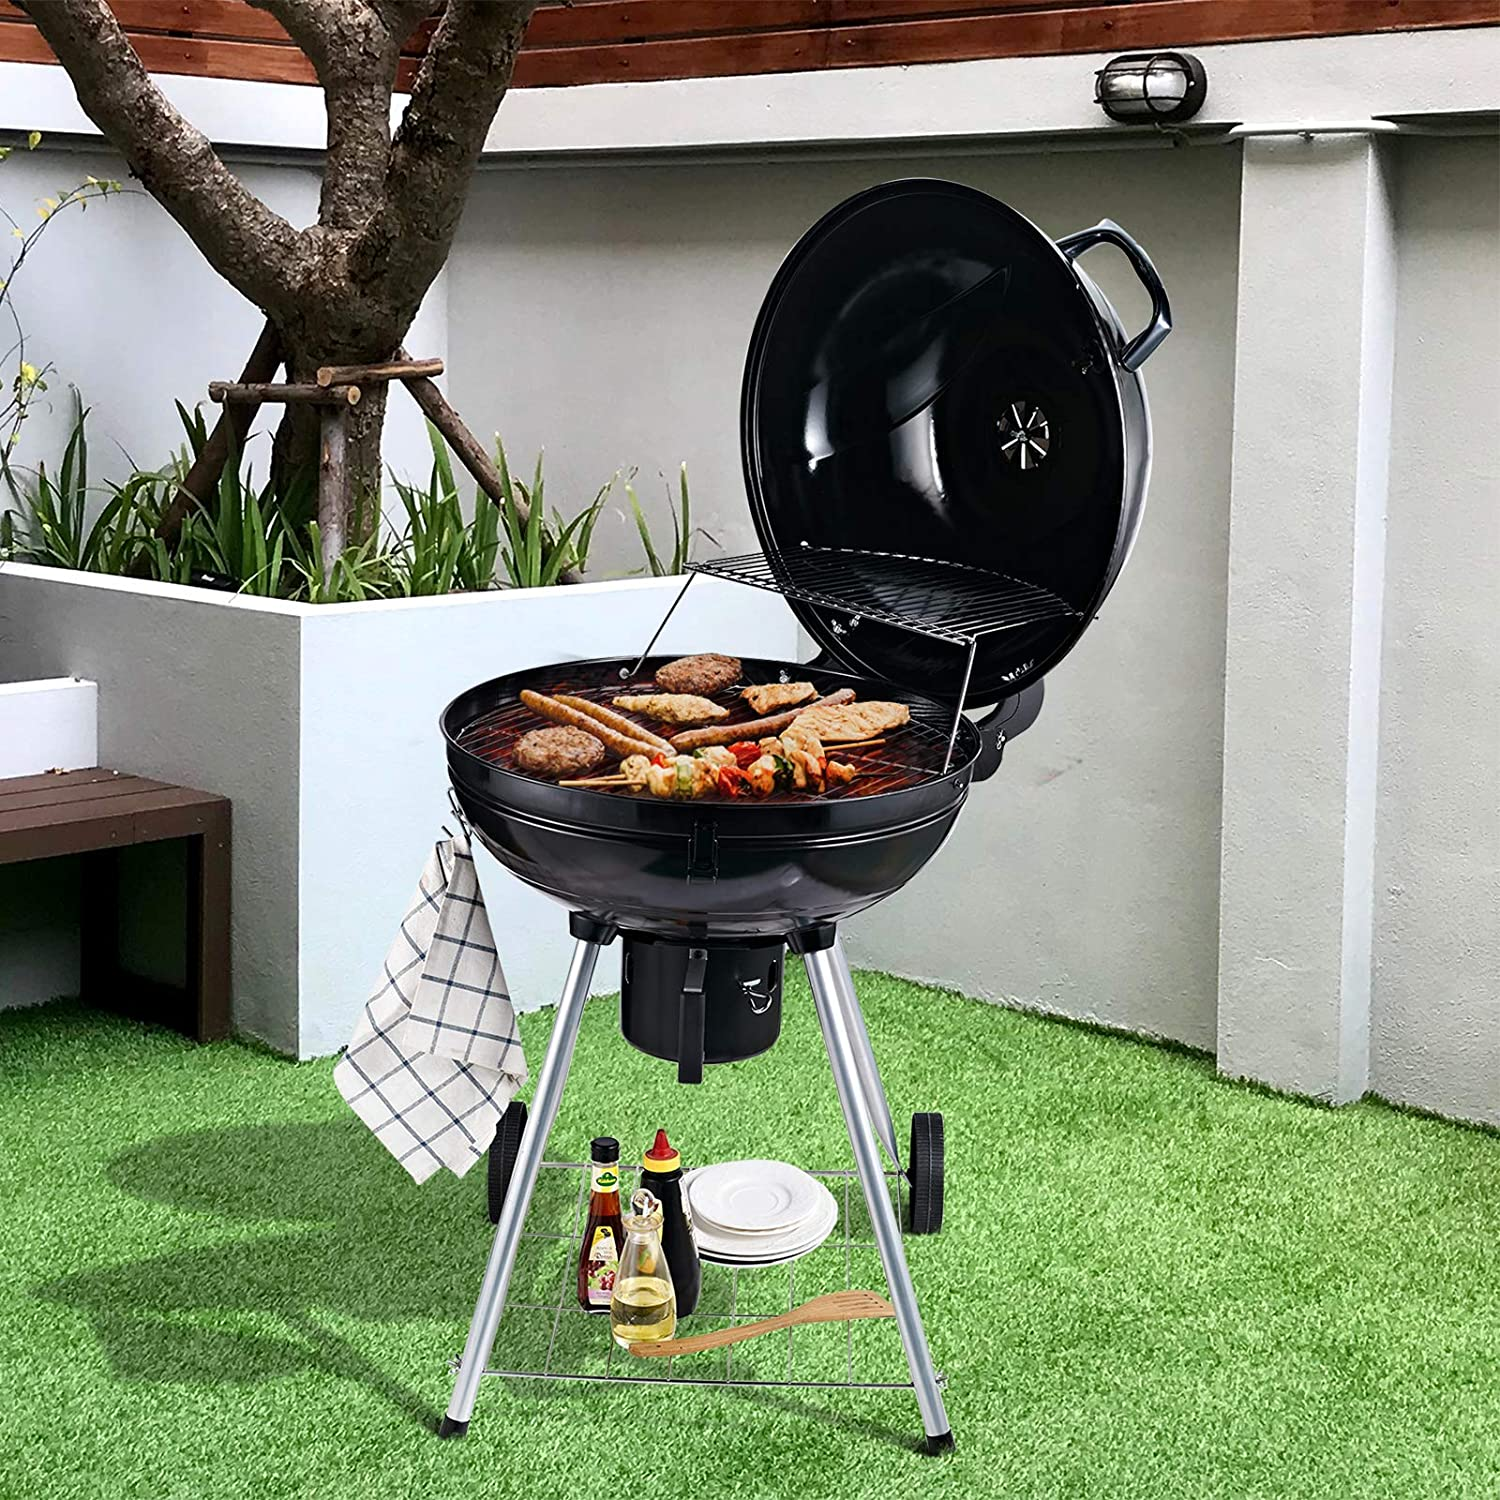 Outsunny Round Kettle Charcoal BBQ Grill Outdoor Garden Barbecue Picnic Family Party Patio Garden Camping Heat Control Portable w//Shelf and Wheels